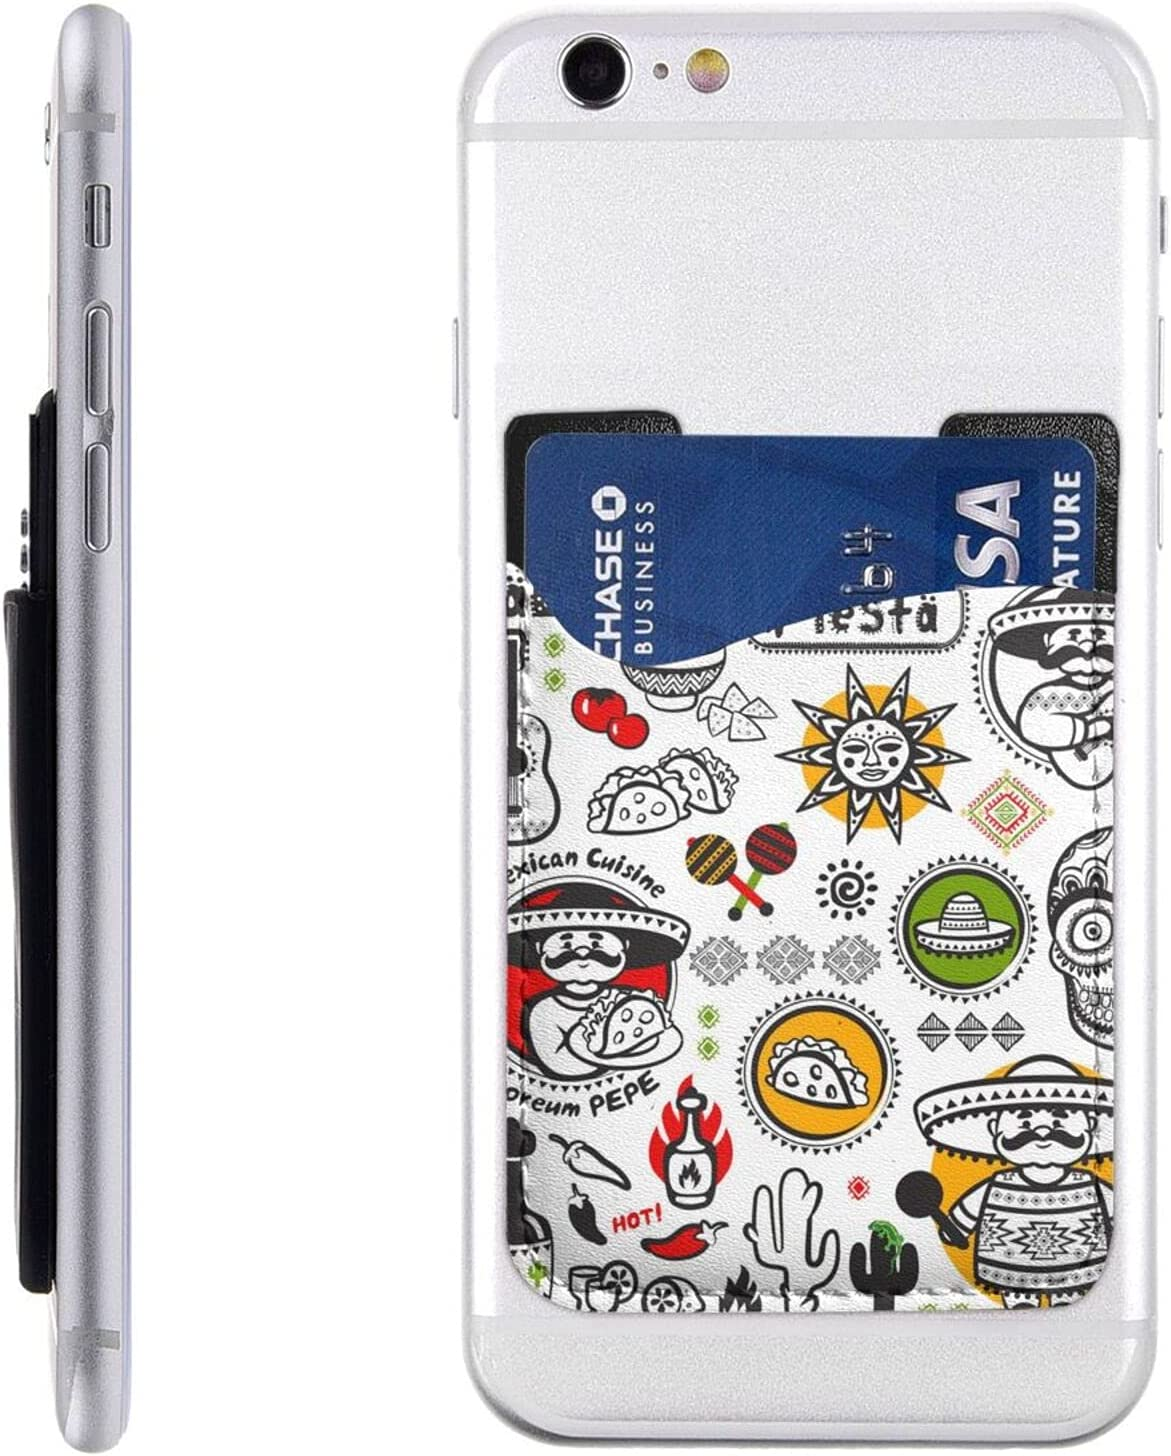 Mexican Salsa Symbols Phone Card Stick Cell Baltimore Mall Holder trend rank On